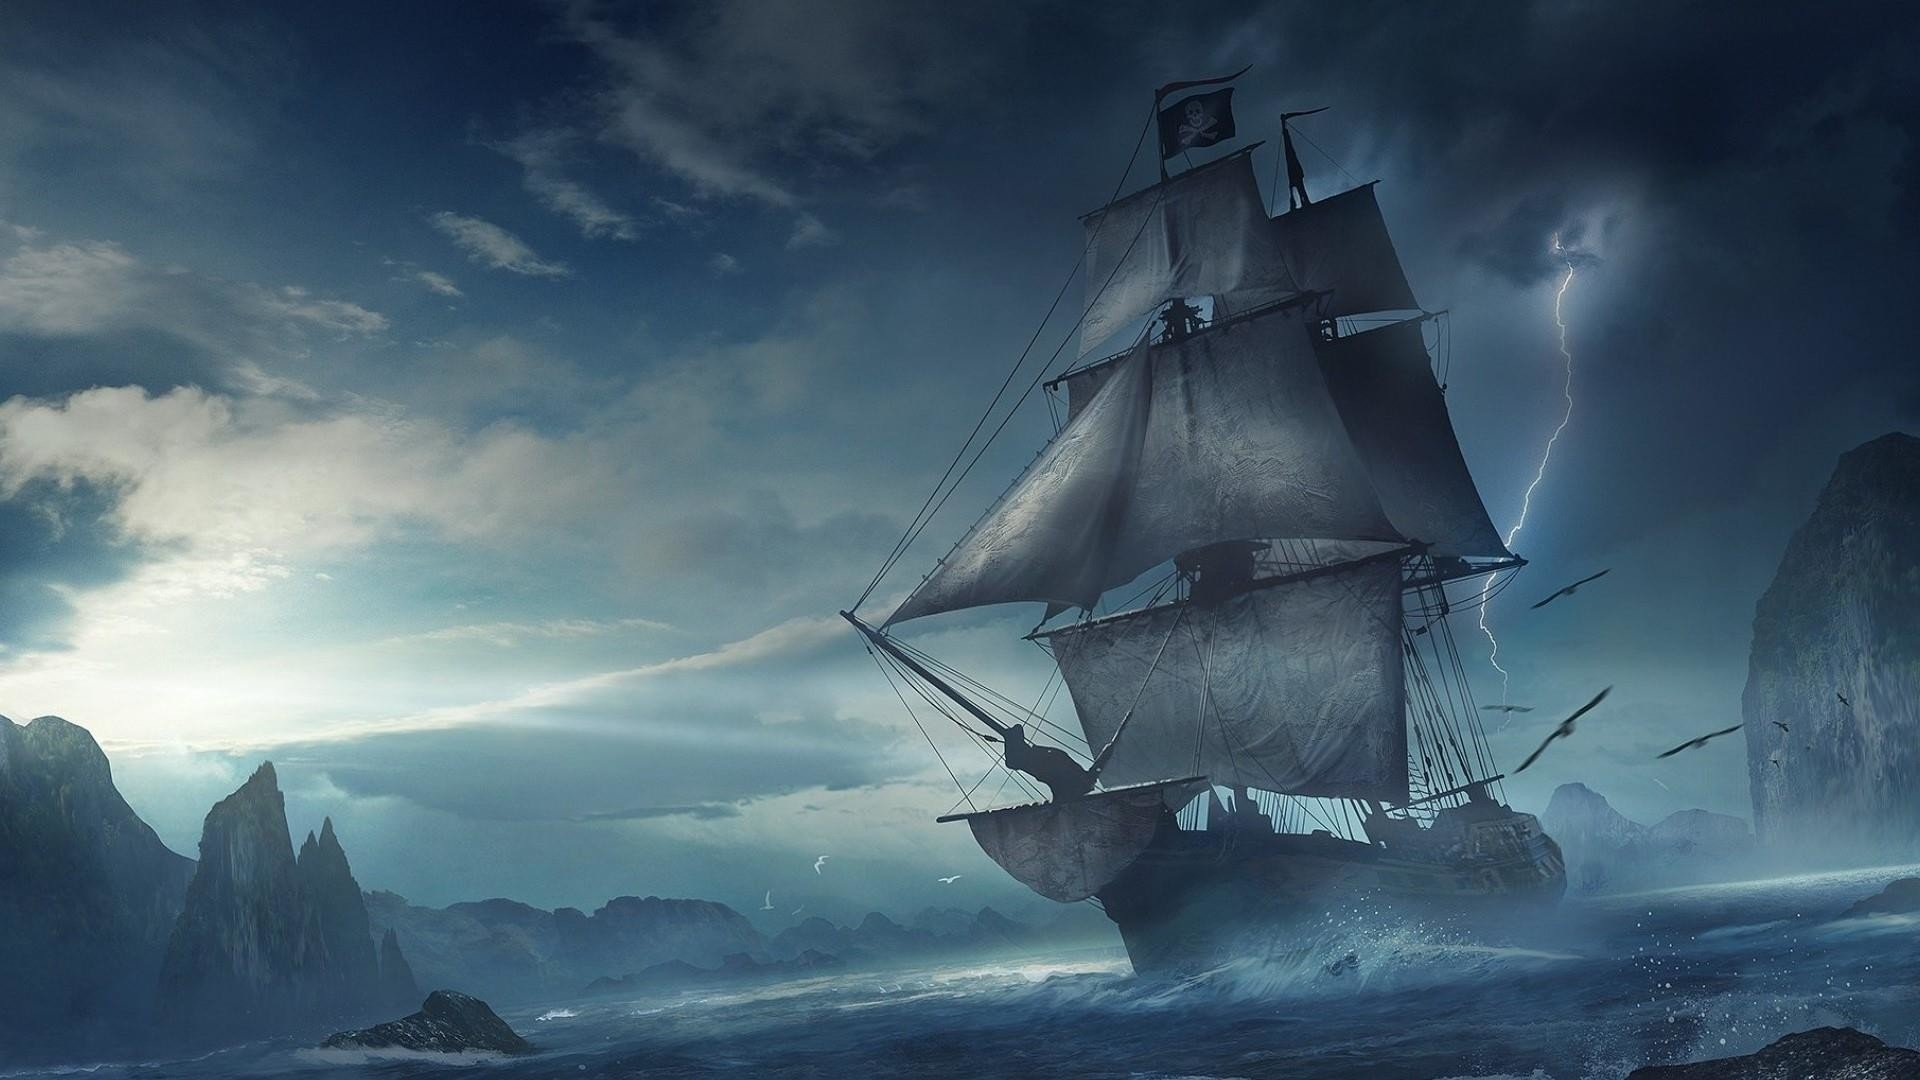 75 Pirate Ship Wallpapers on WallpaperPlay 1920x1080